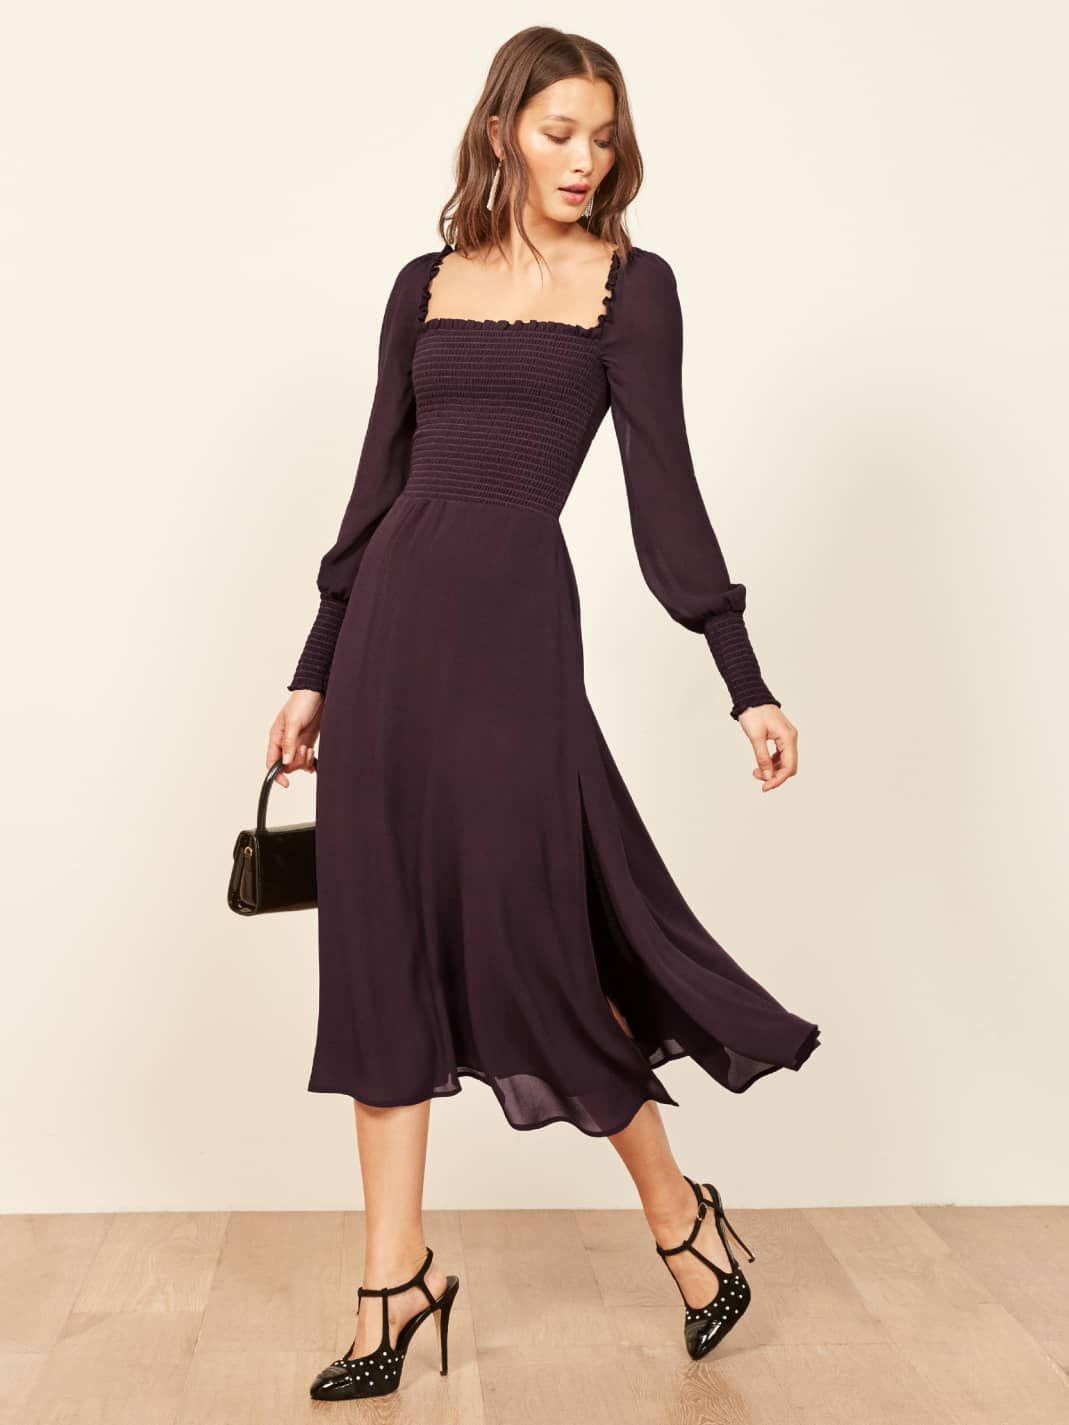 Blackberry rowan dress reformation ethical fashion outfits in